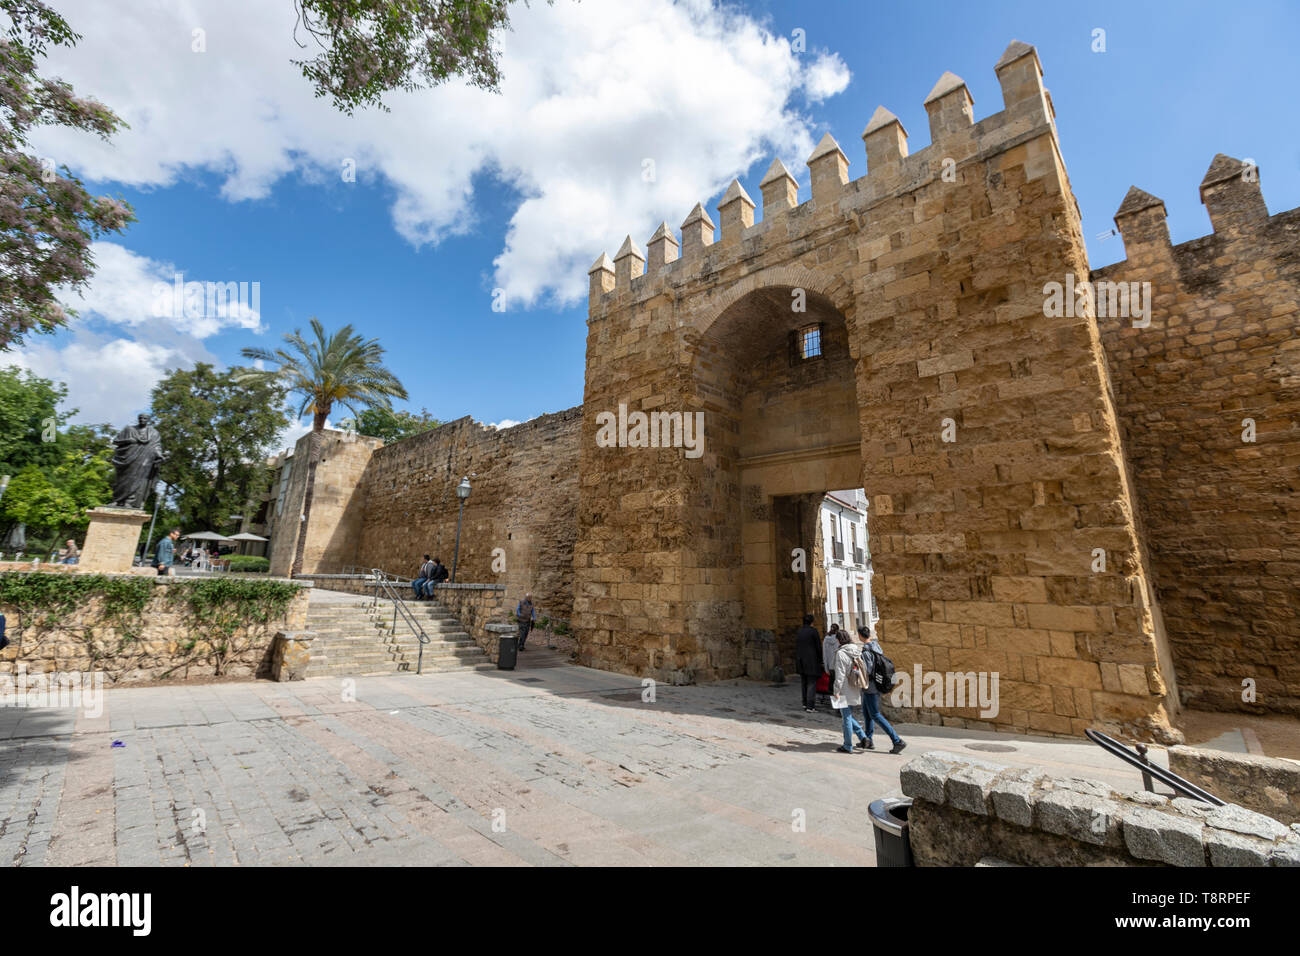 The statue of philosopher Lucius Annaeus Seneca the Younger by Amadeo Ruiz Olmos and Puerta de Almodóvar, Roman walls, Cordoba, Andalusia, Spain - Stock Image